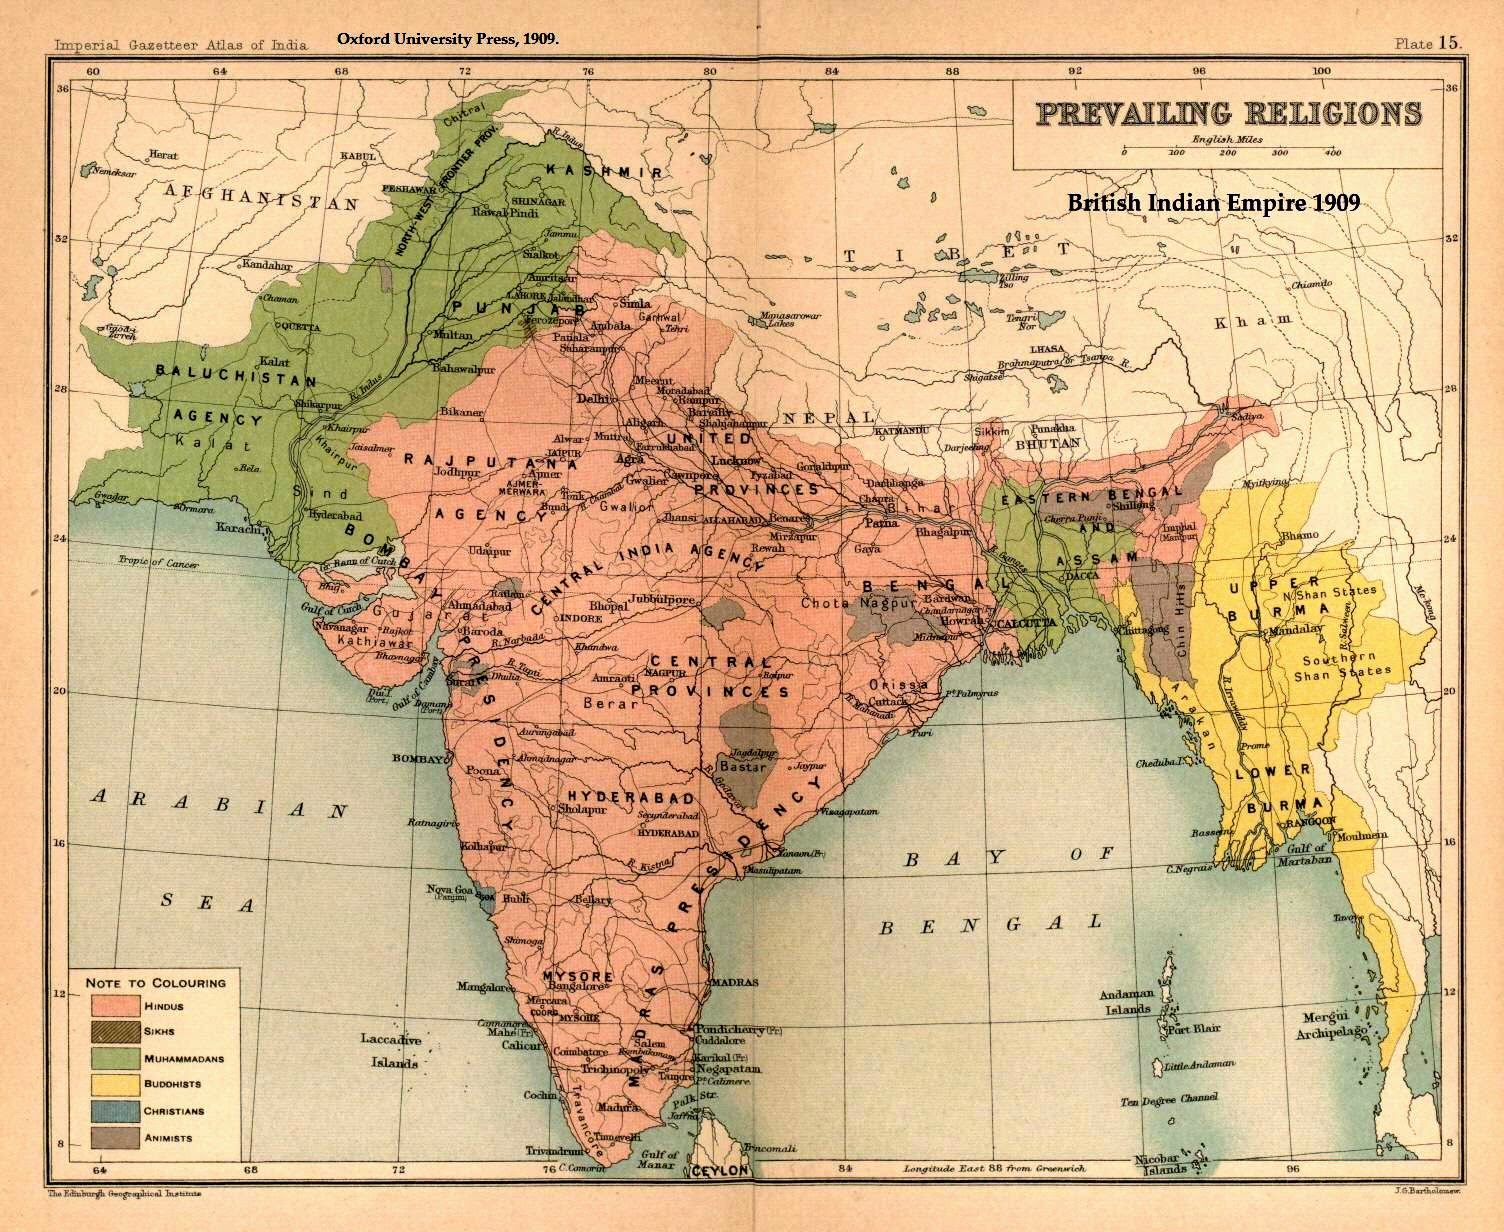 religions in british india the boundaries of present day pakistan and bangladesh were etched in religion before the countries existed